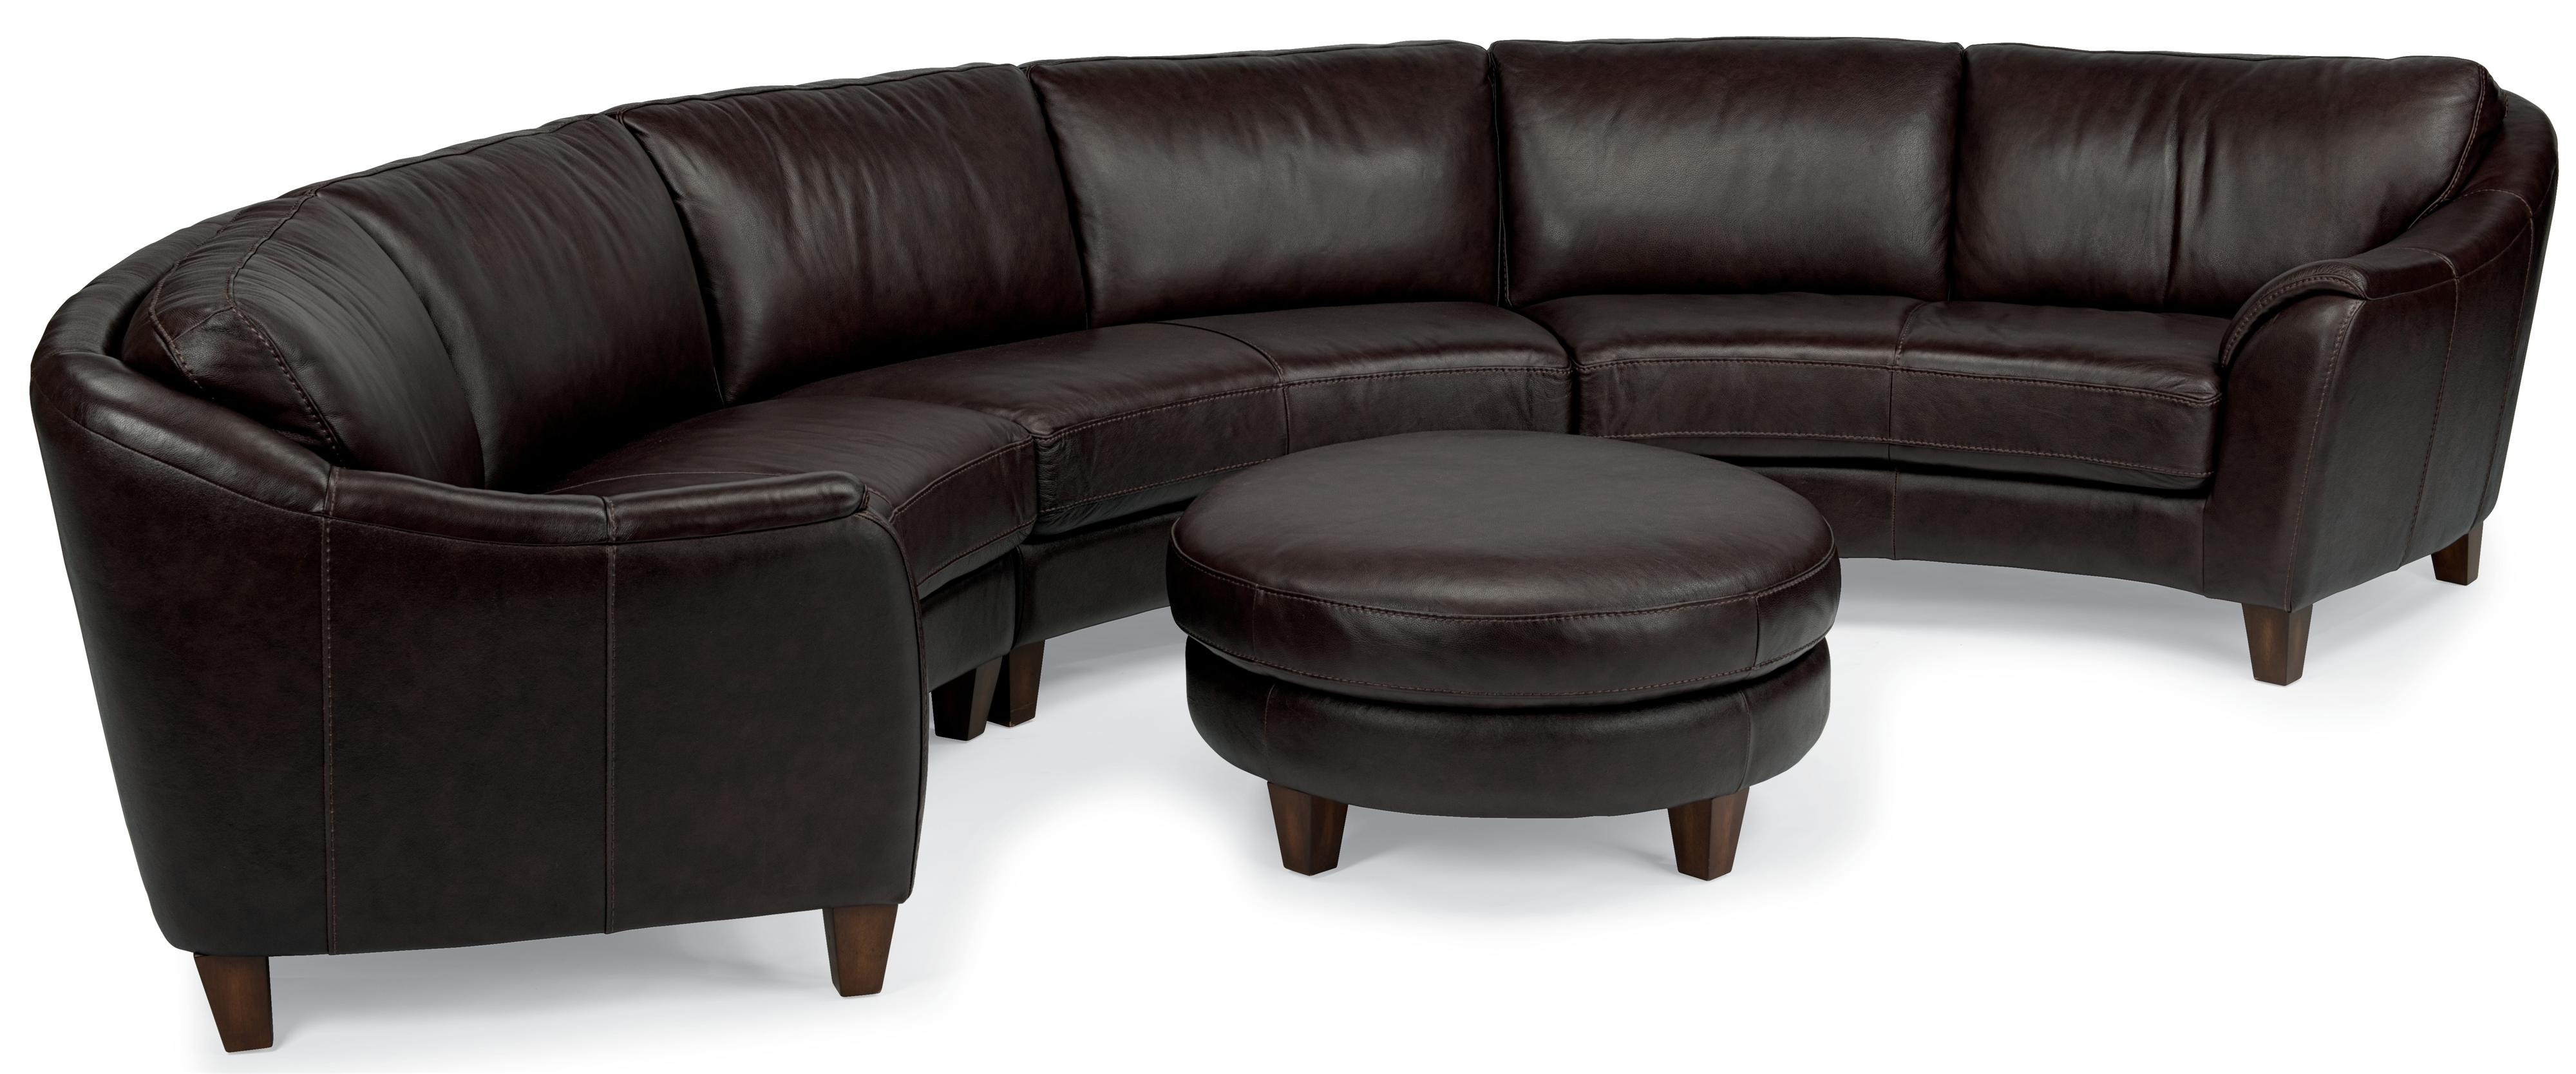 Conversation sectional conversation sectional bennett for Conversation sofa